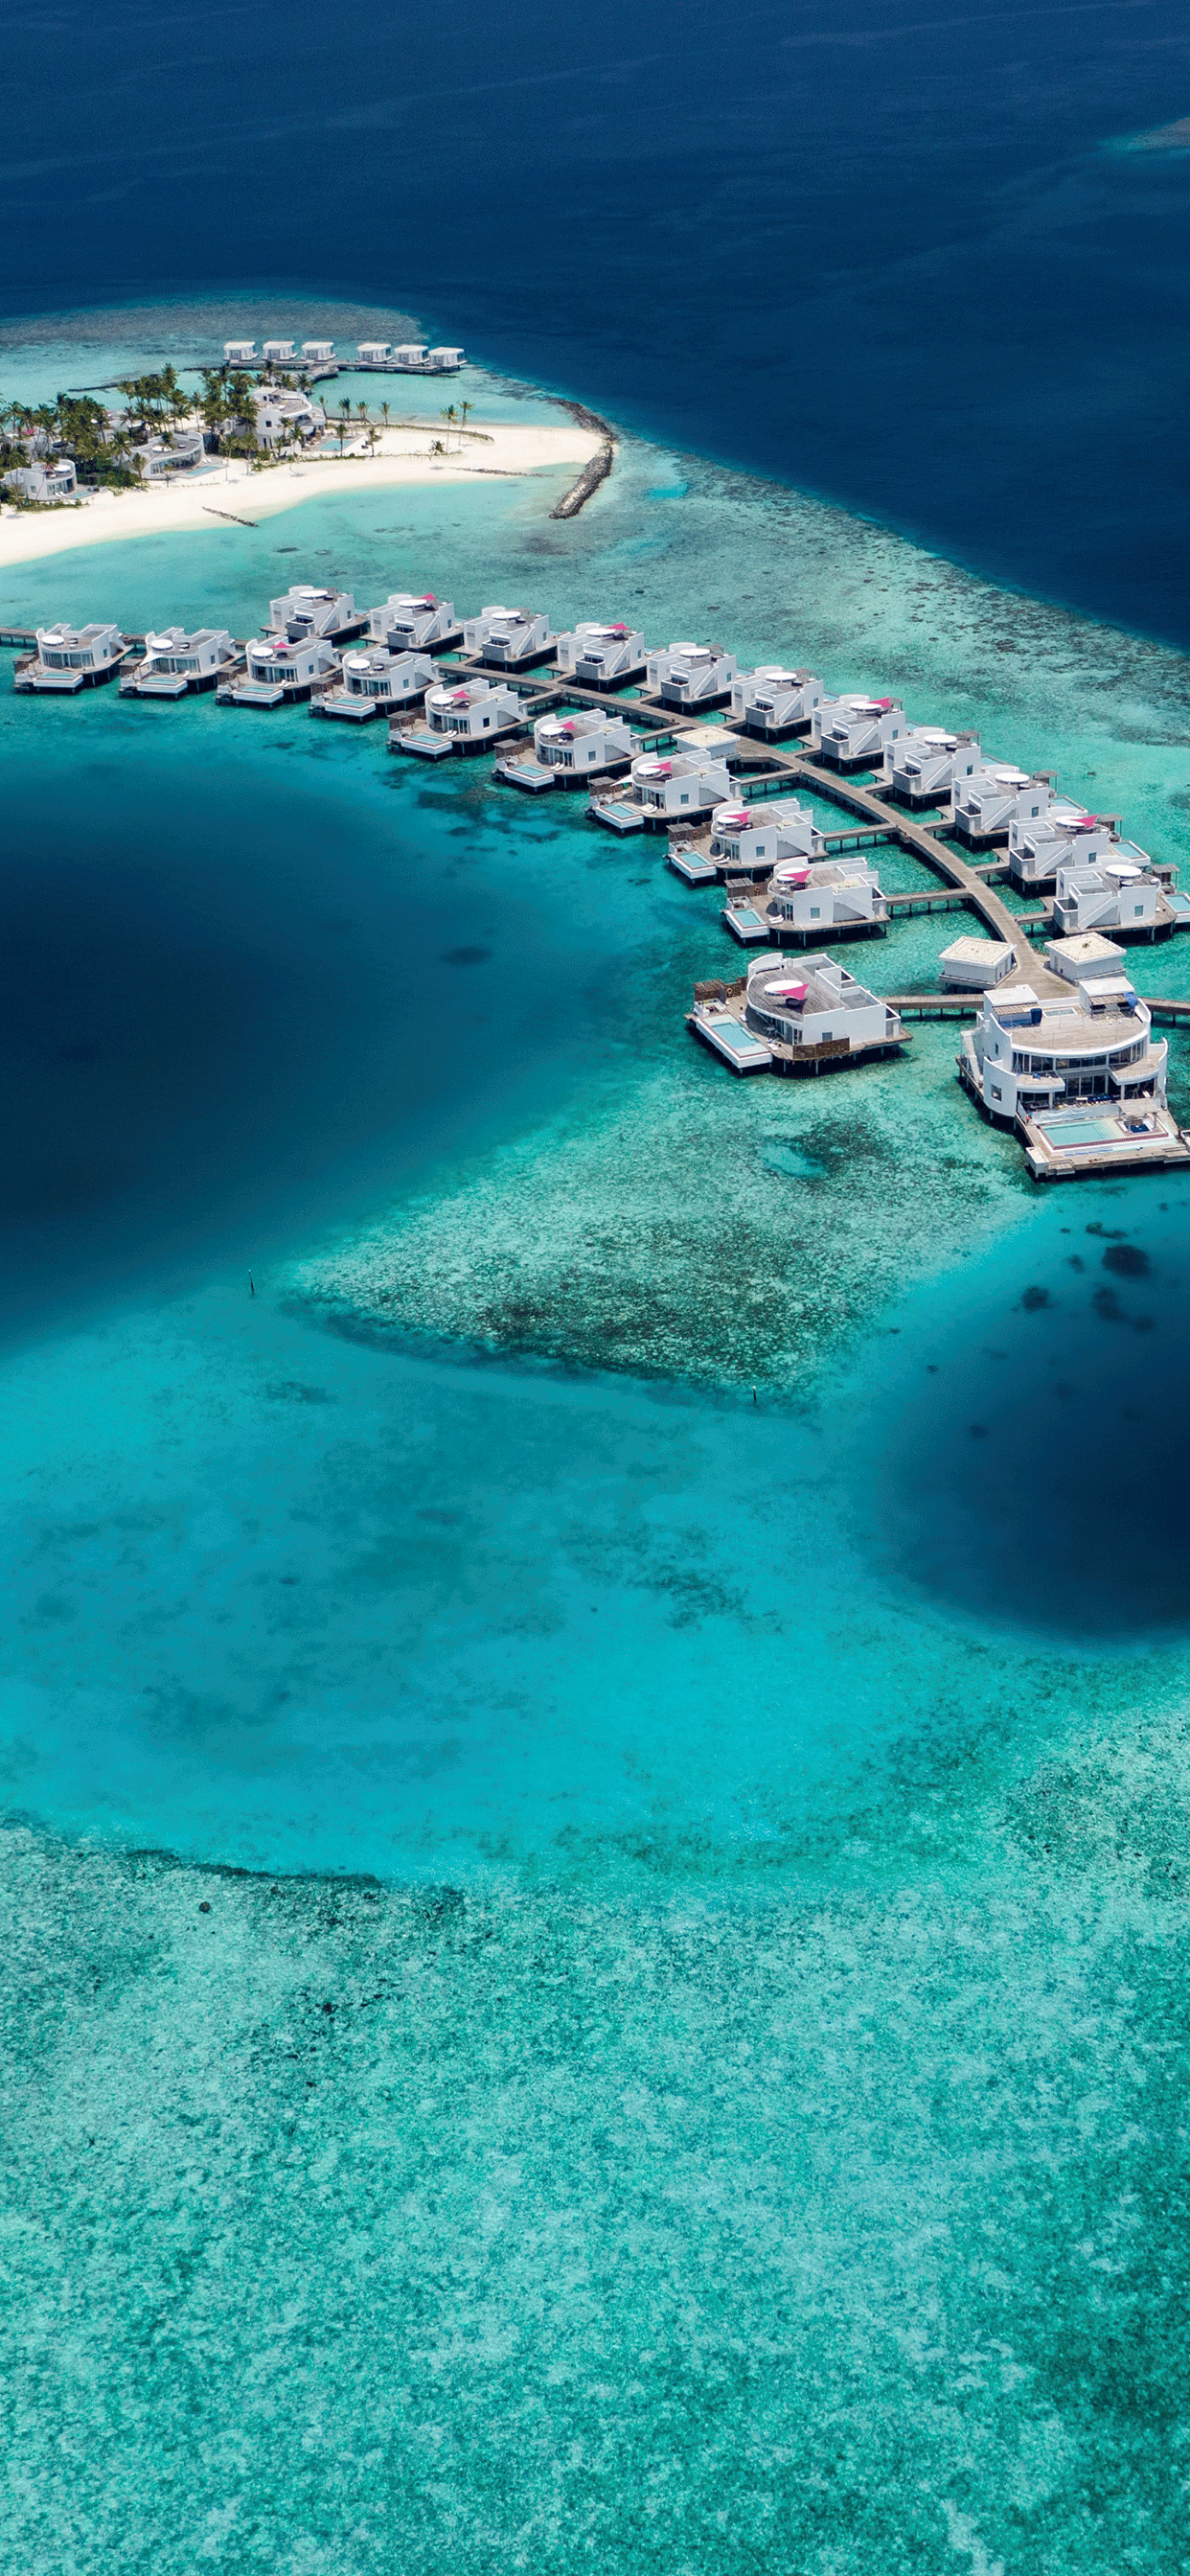 iPhone wallpapers maldives house Fonds d'écran iPhone du 19/07/2019